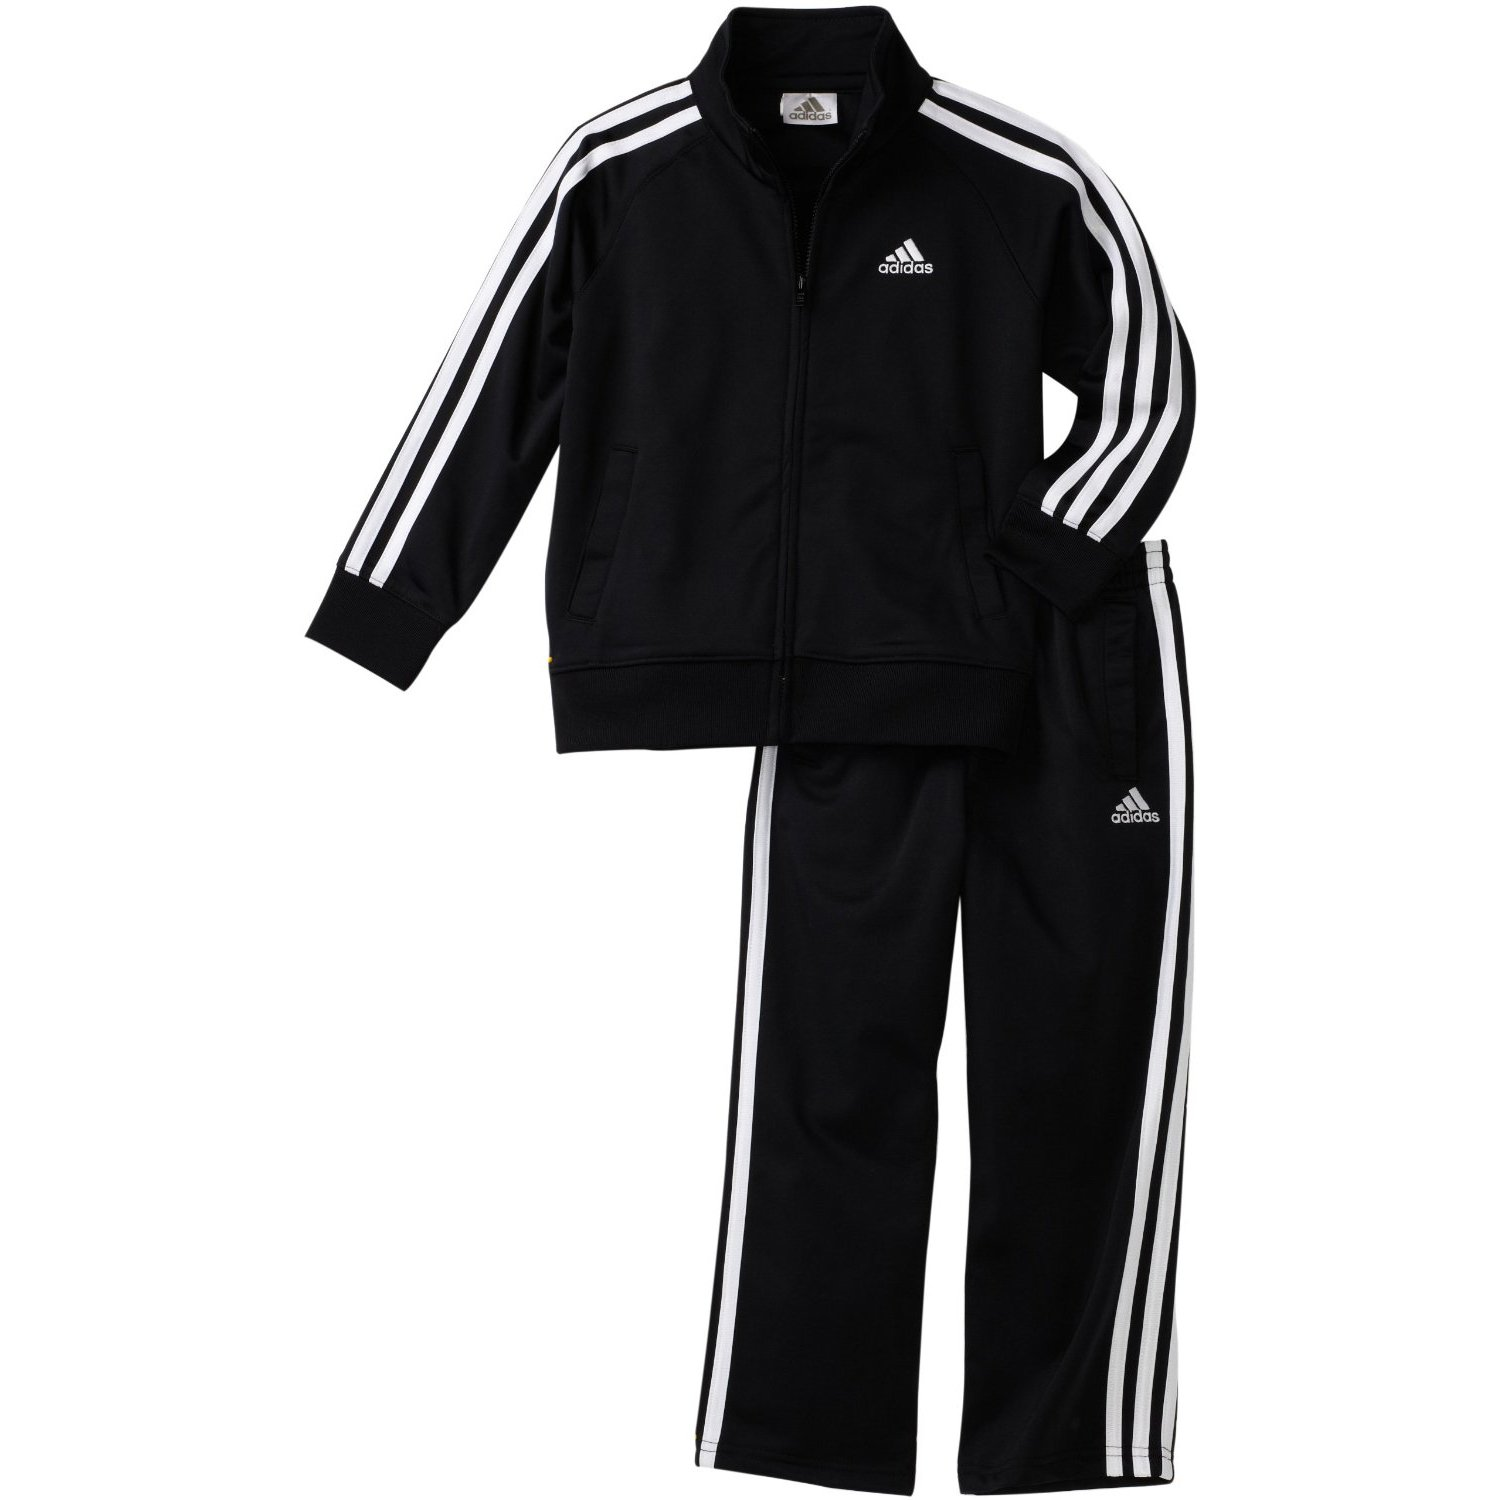 adidas Toddler Boys' Iconic Tricot Jacket and Pant Set, Black/White, 4T by adidas